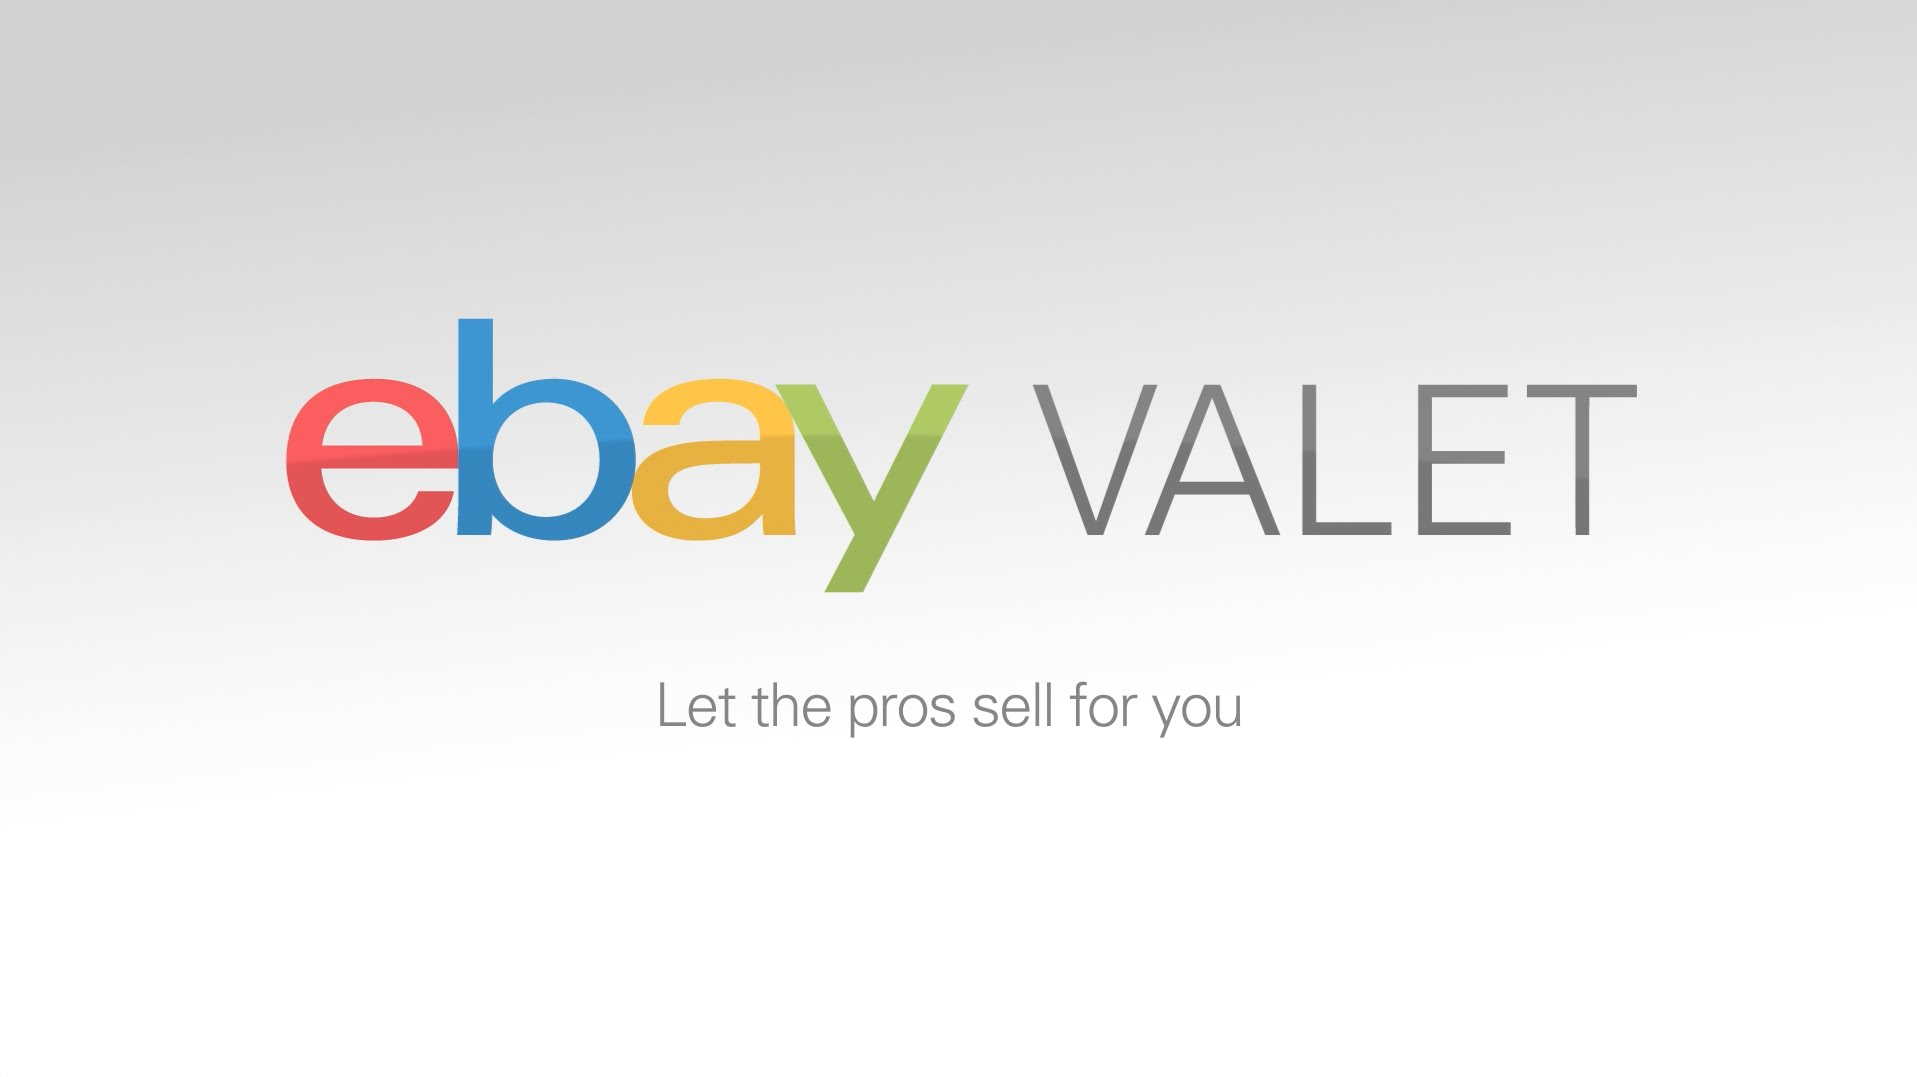 eBay Valet coming to 1,600 FedEx Office stores